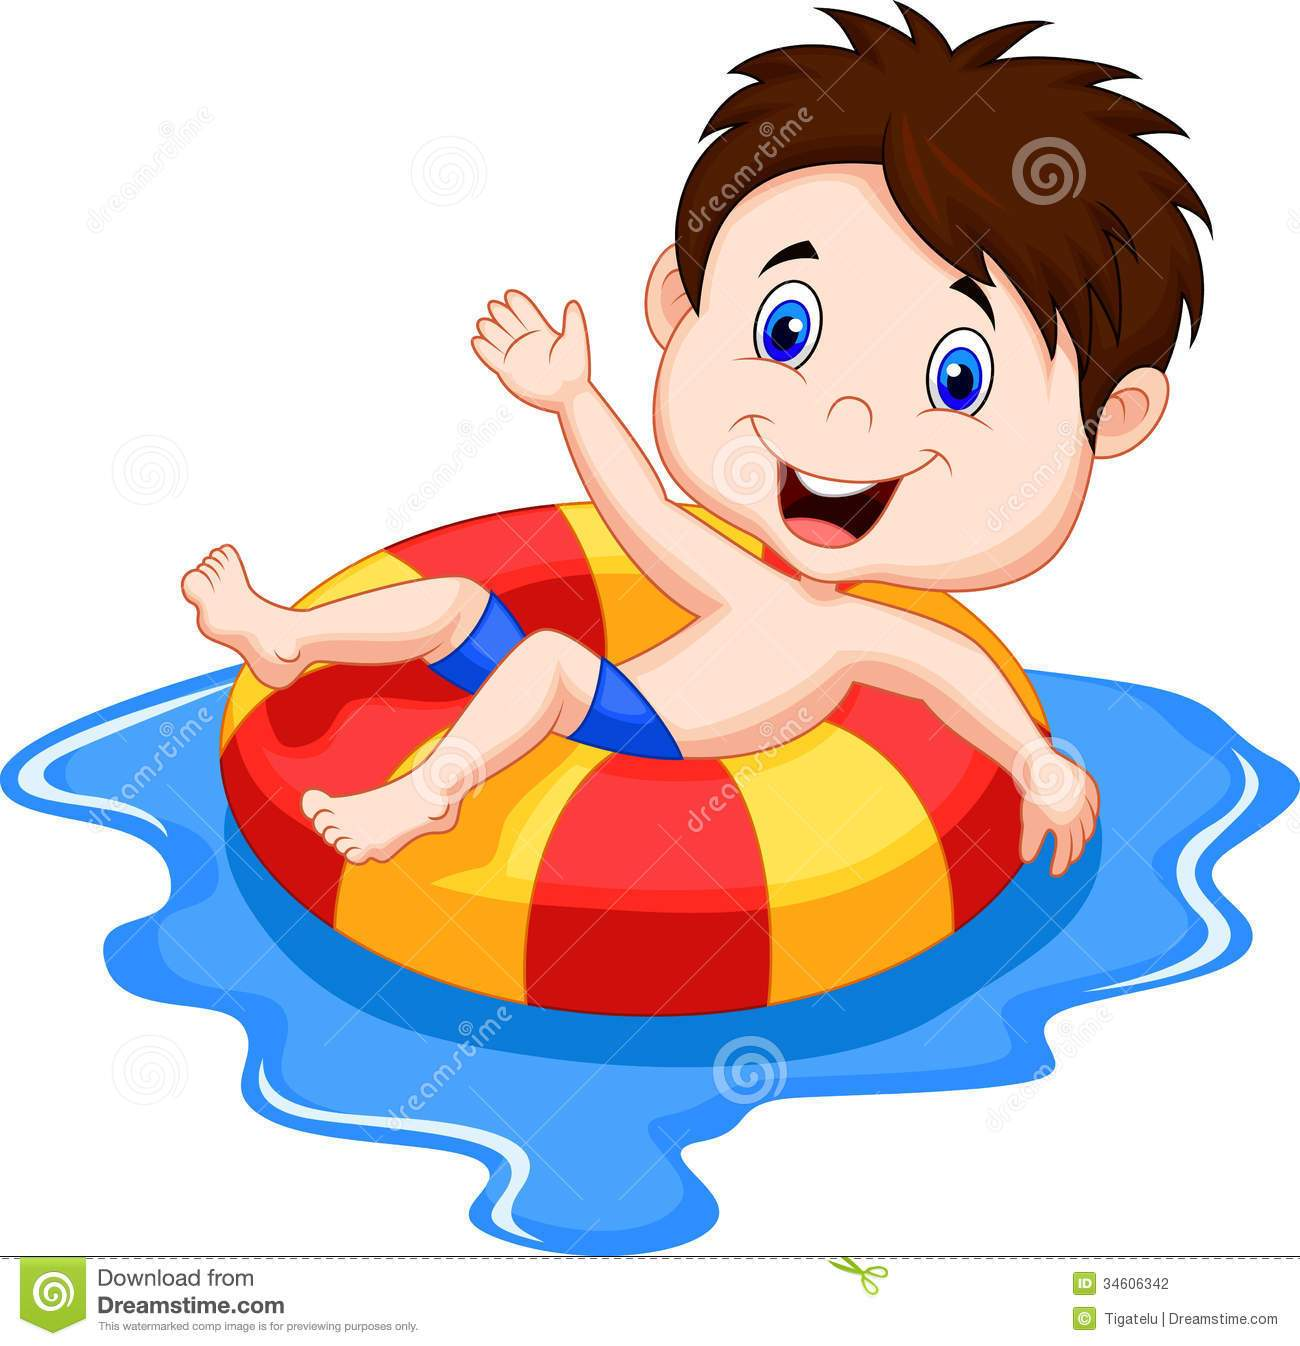 Swimming clipart for kids 3 » Clipart Portal.